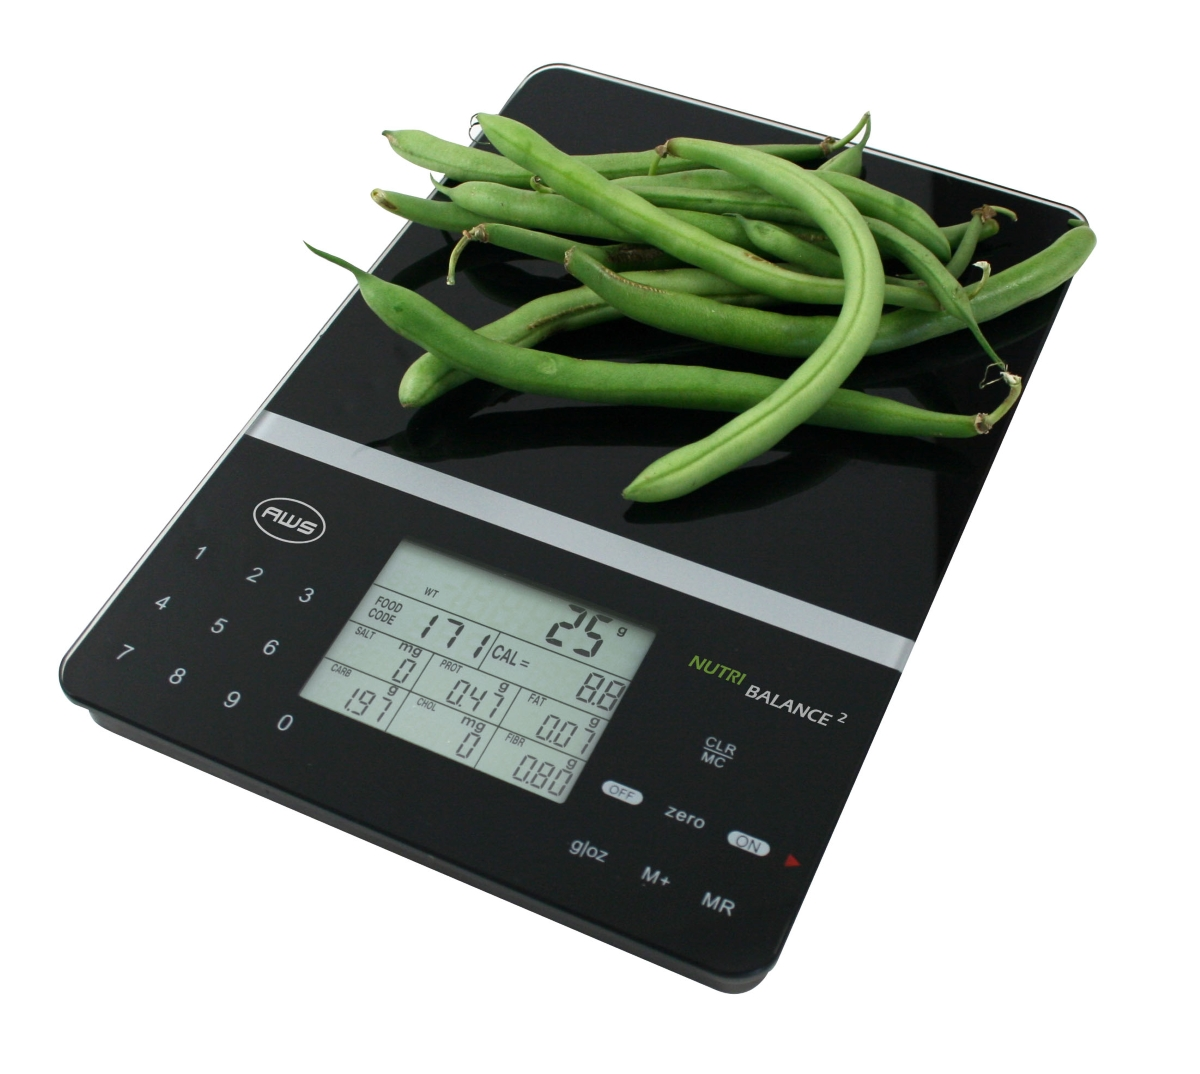 AWS NB2-5000 Nutritional Food Kitchen Scale 5000g x 1g